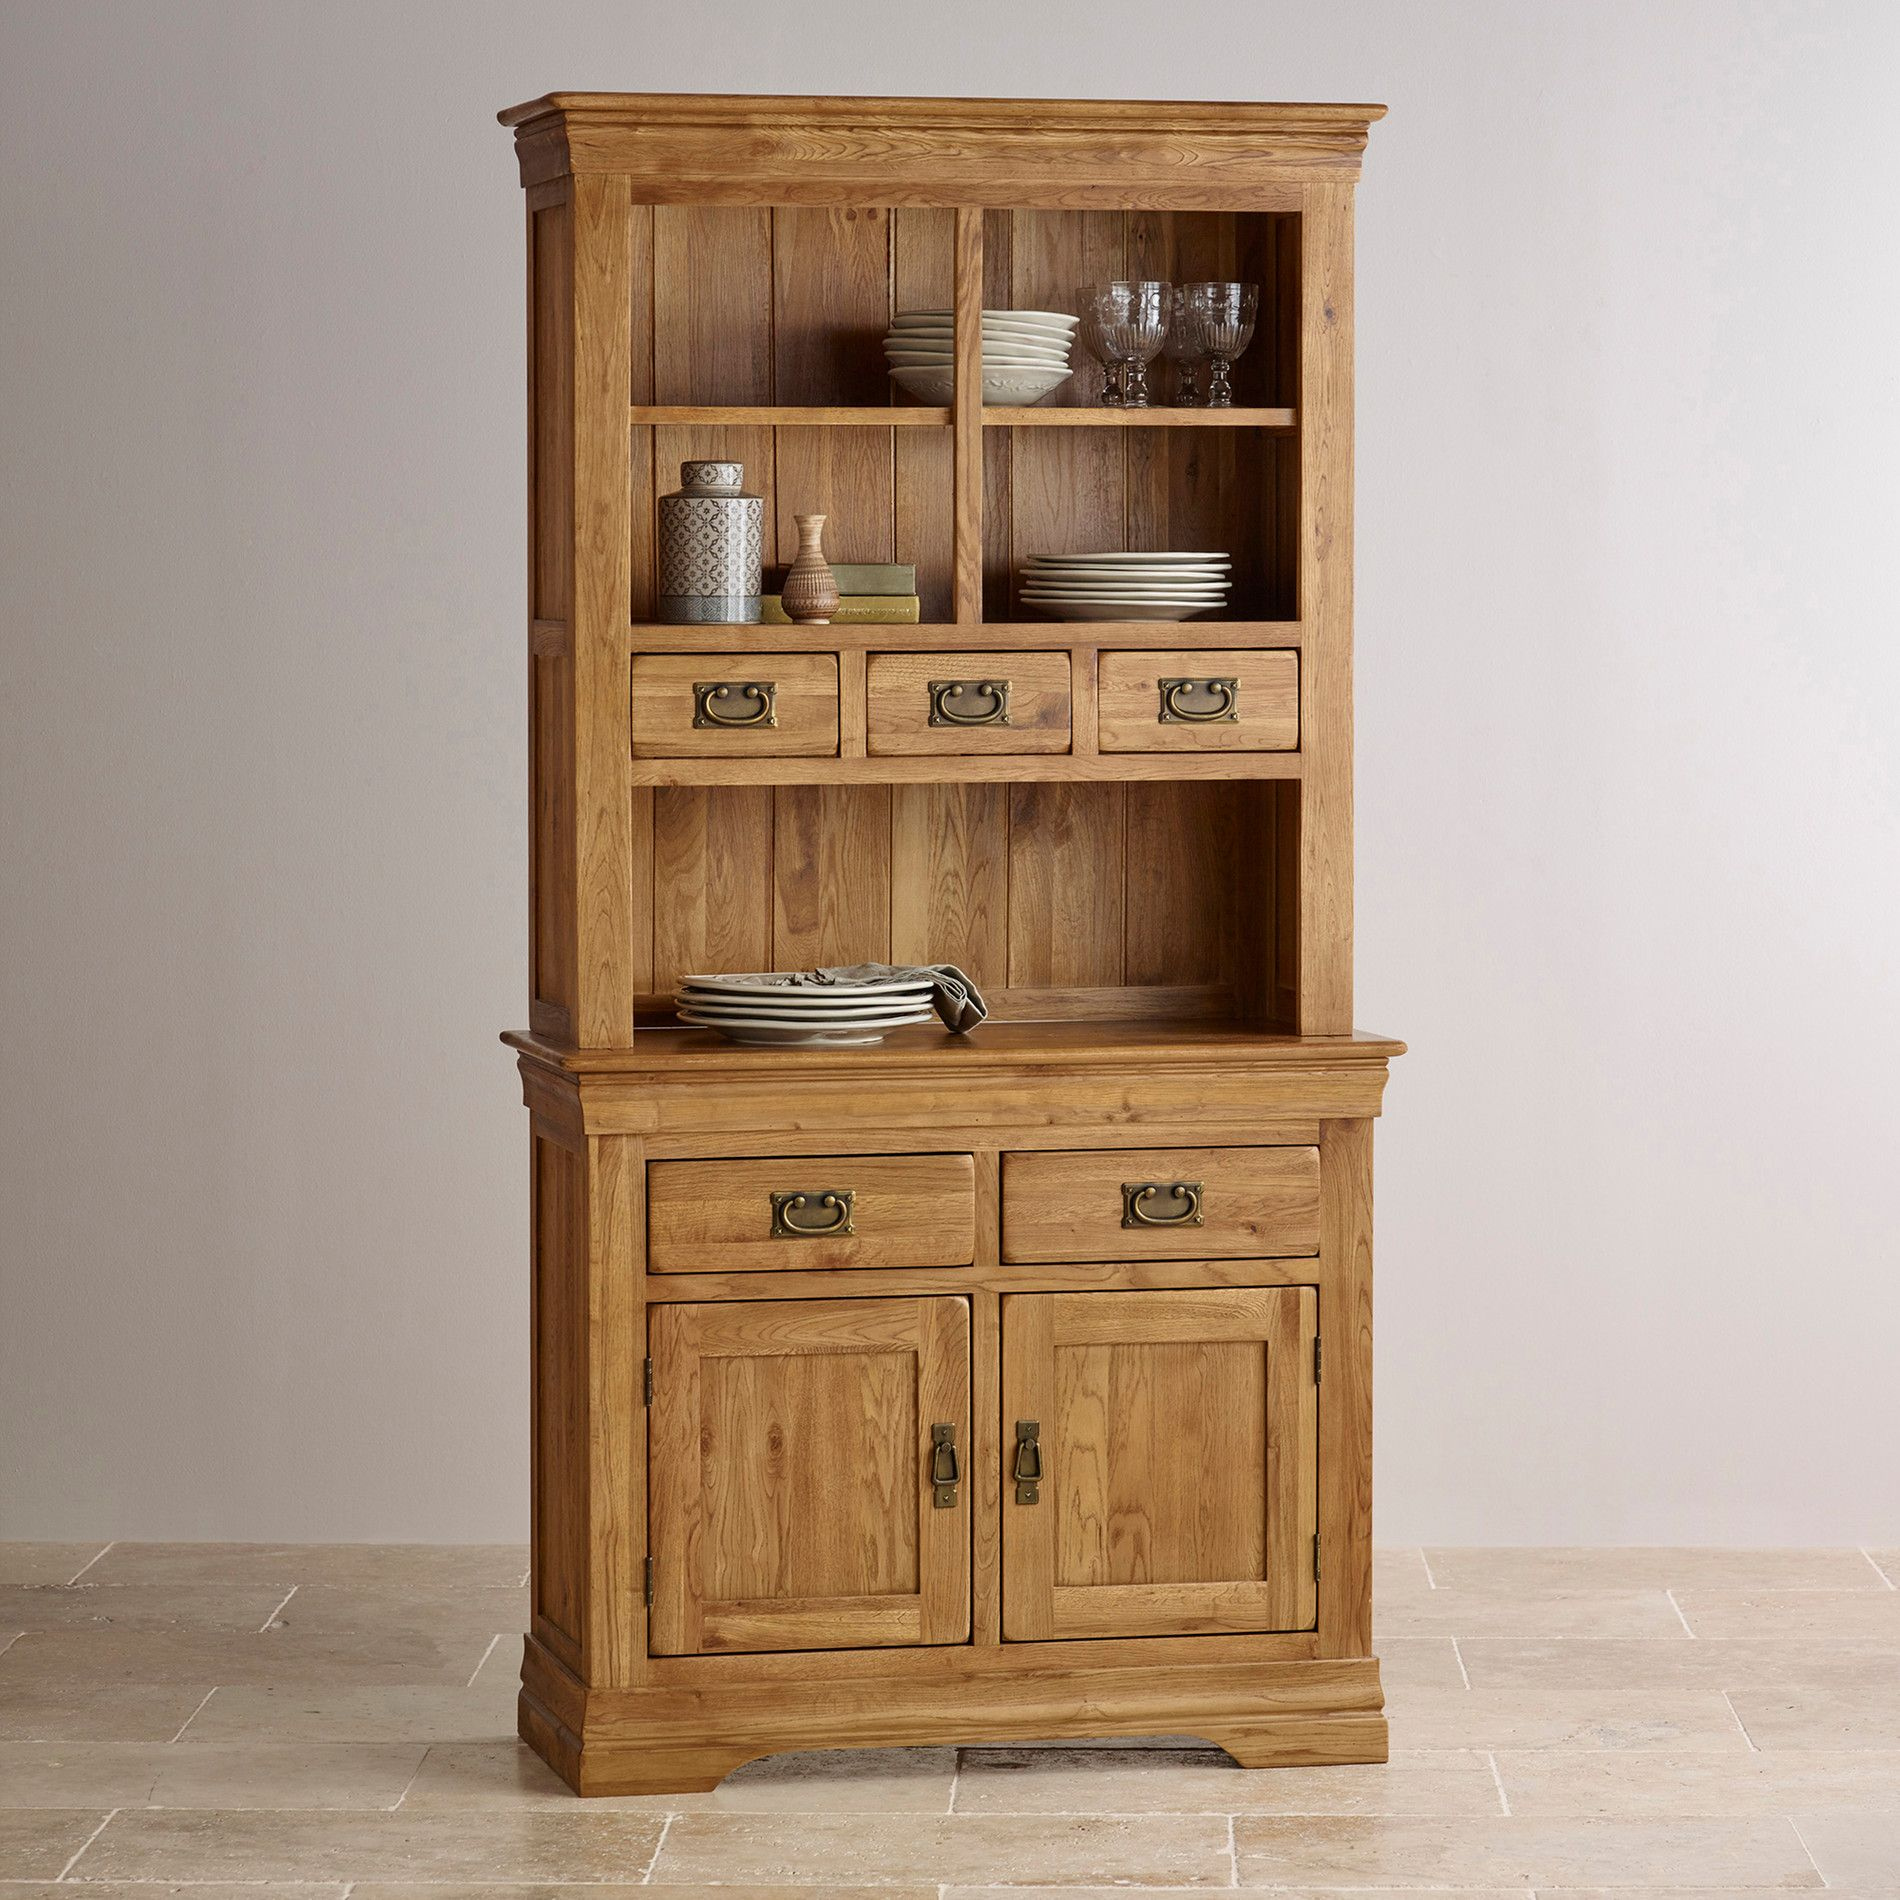 French Farmhouse Rustic Solid Oak Small Dresser | Oak dresser, Oak ...